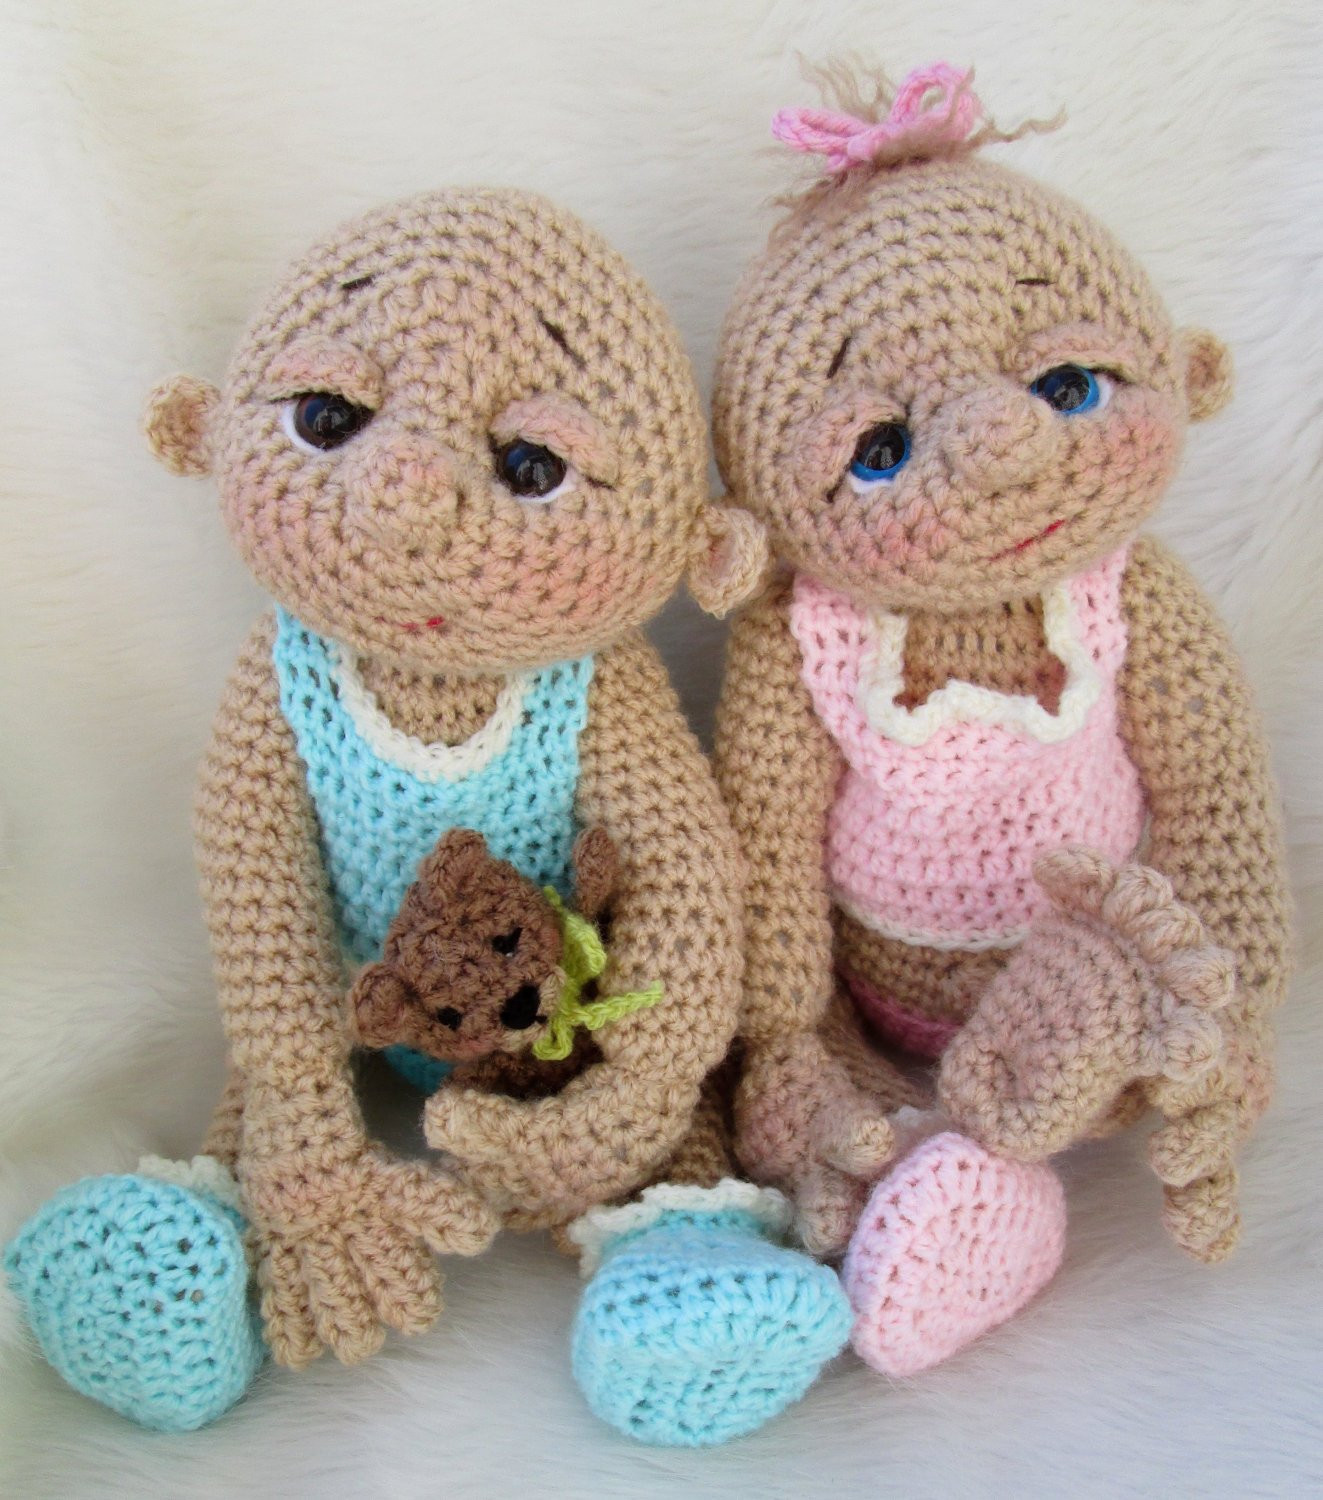 Crochet toy Patterns Unique so Cute Baby Doll Crochet Pattern with Teddy Bear Hat toy and Of Perfect 45 Pics Crochet toy Patterns